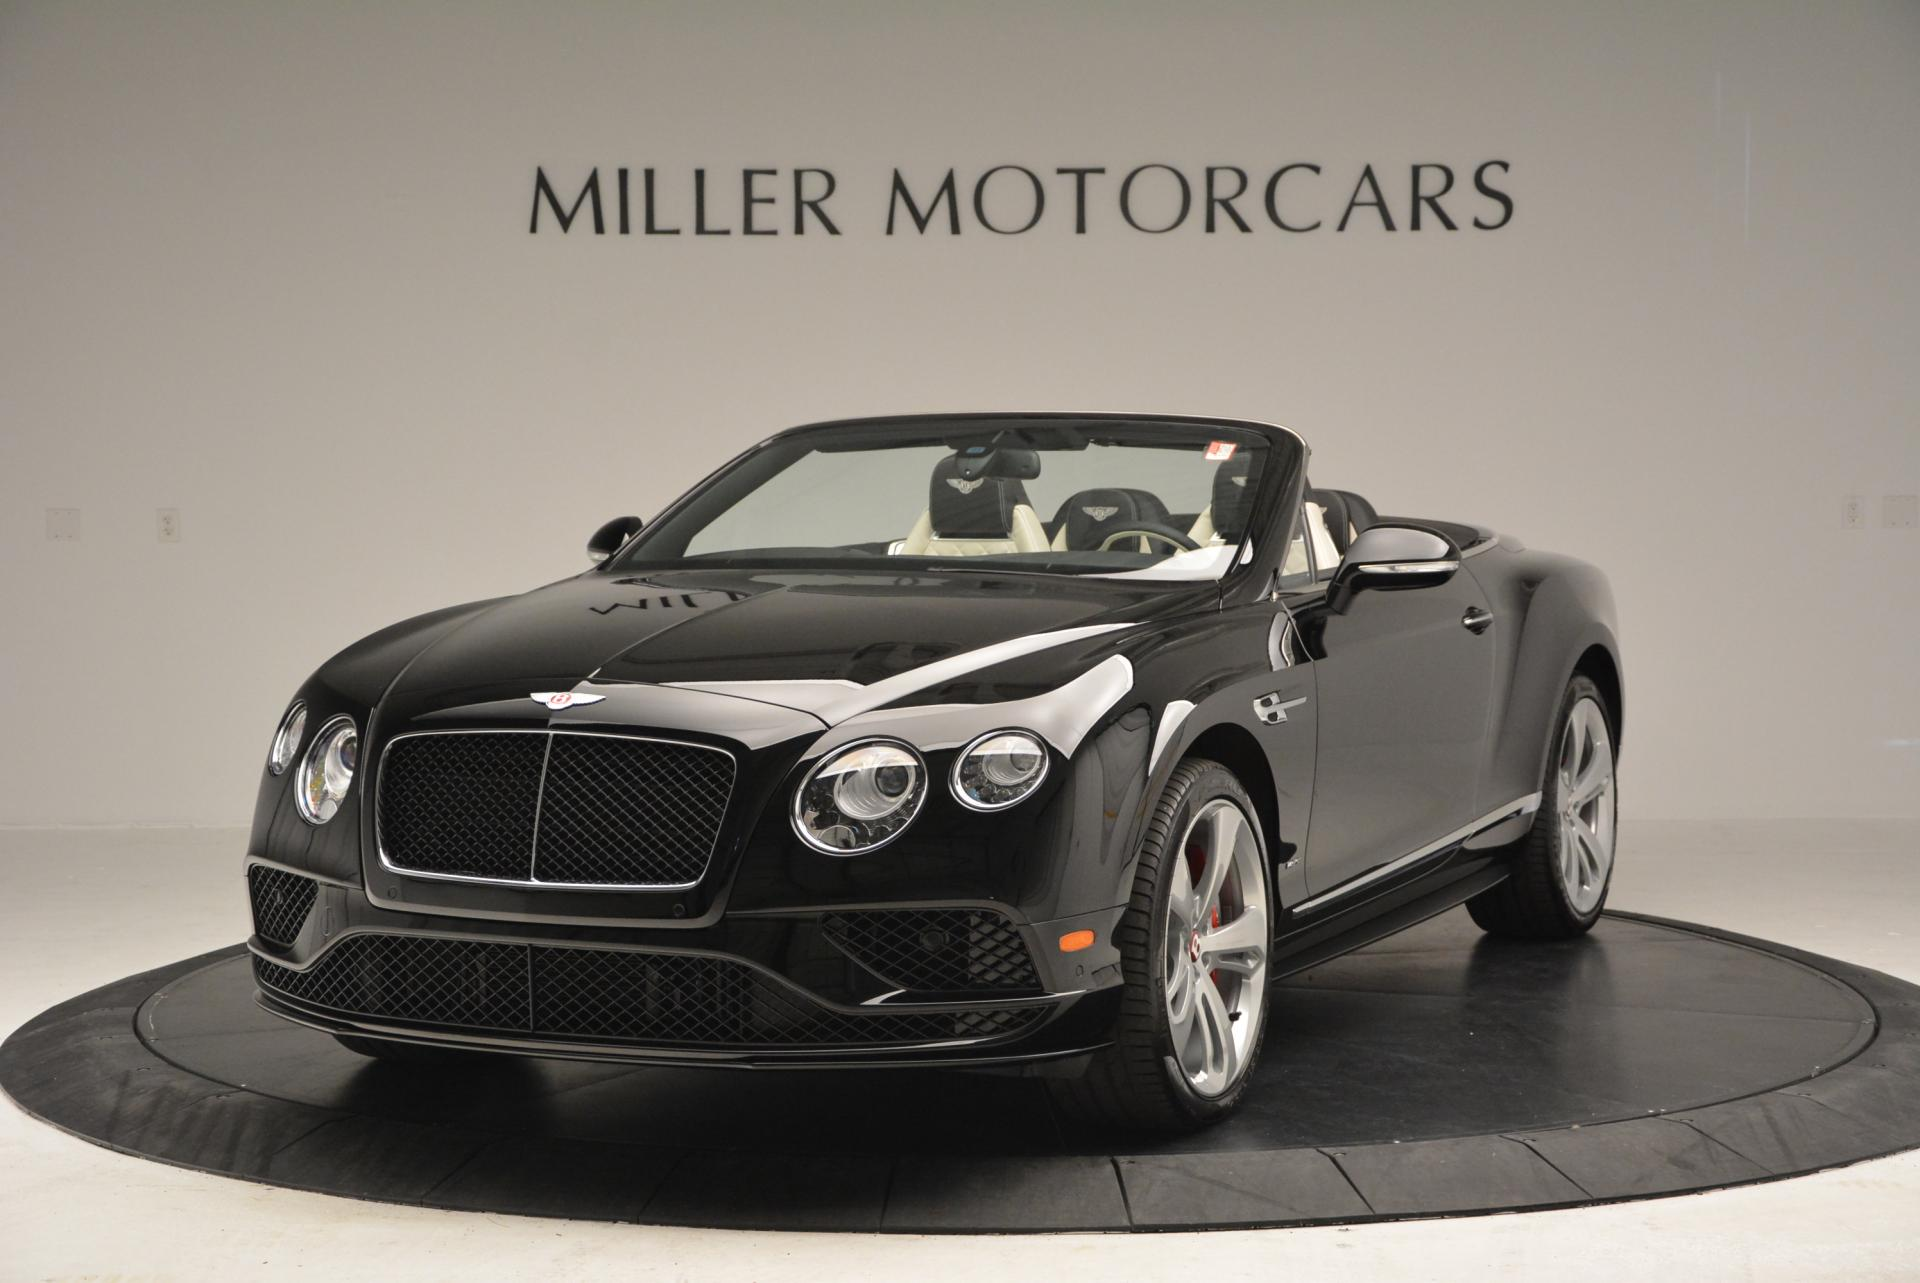 New 2016 Bentley Continental GT V8 S Convertible for sale Sold at Rolls-Royce Motor Cars Greenwich in Greenwich CT 06830 1